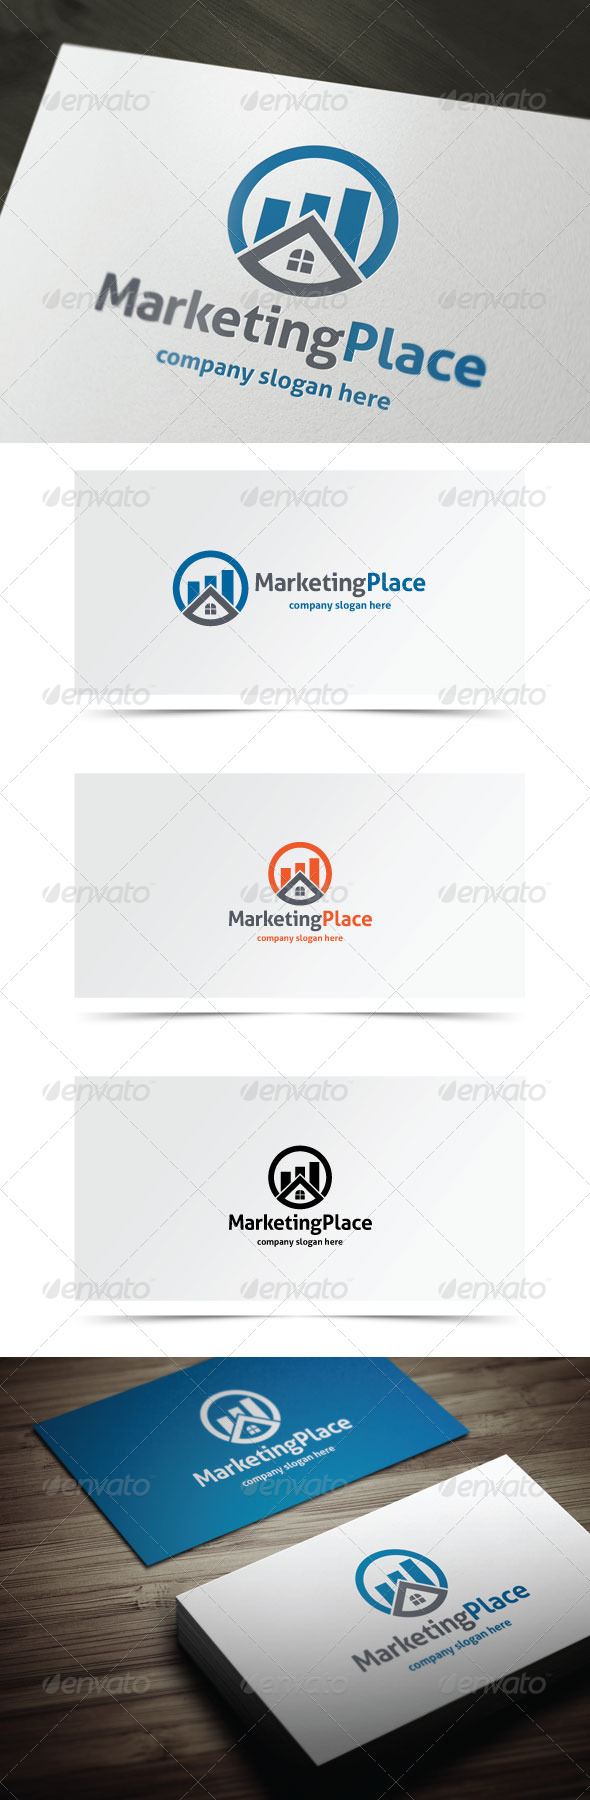 GraphicRiver Marketing Place 6674012